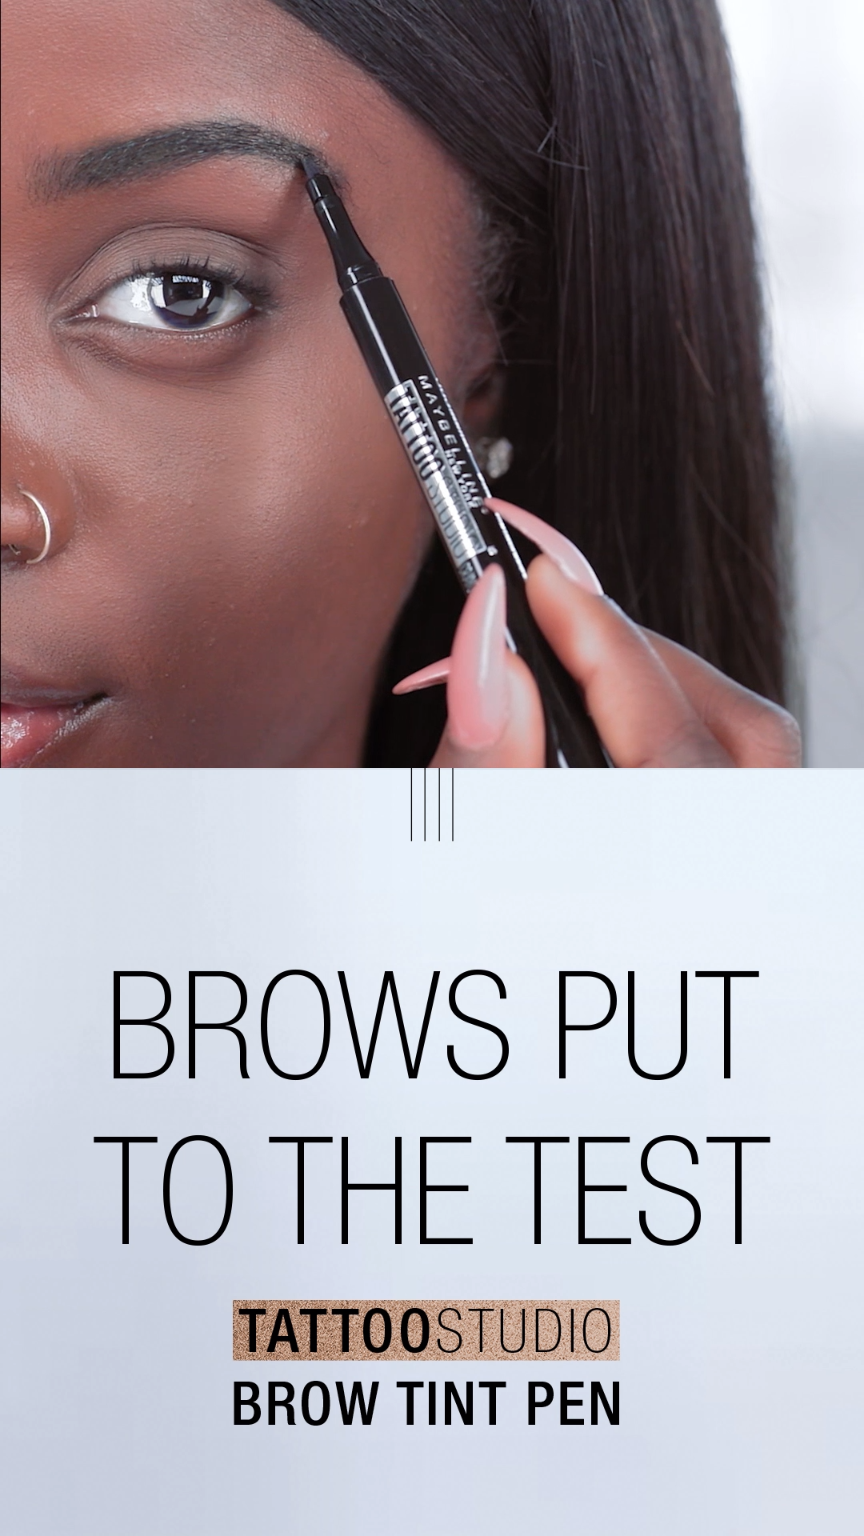 Maybelline TattooStudio Brow Tint Pen | Maybelline Beauty Guides